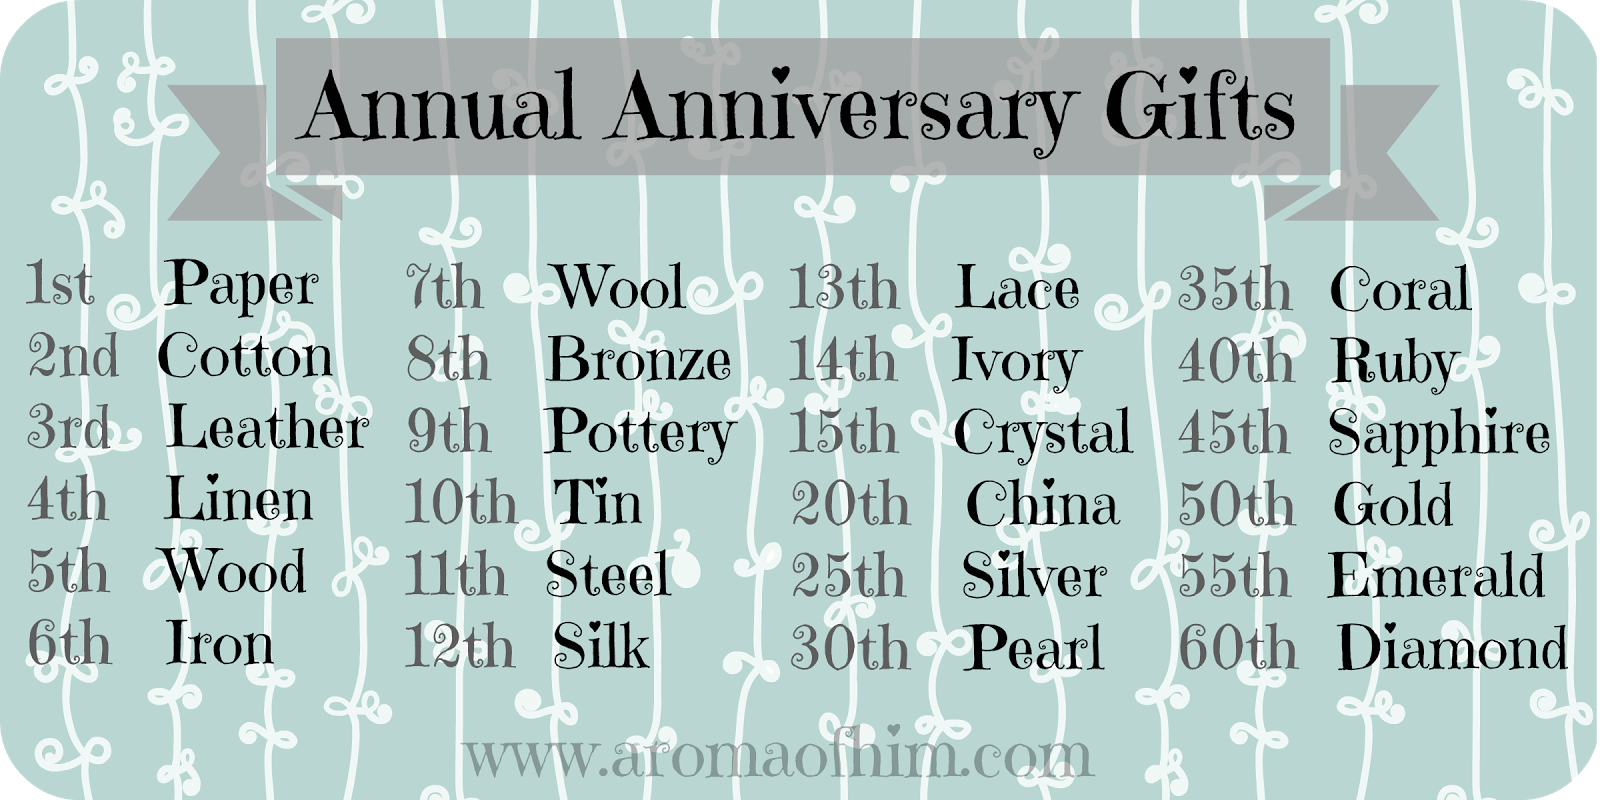 List Of Wedding Gifts By Year : Curious To Know If Anyone Uses This List Each Year I Guess I . 2 Month ...